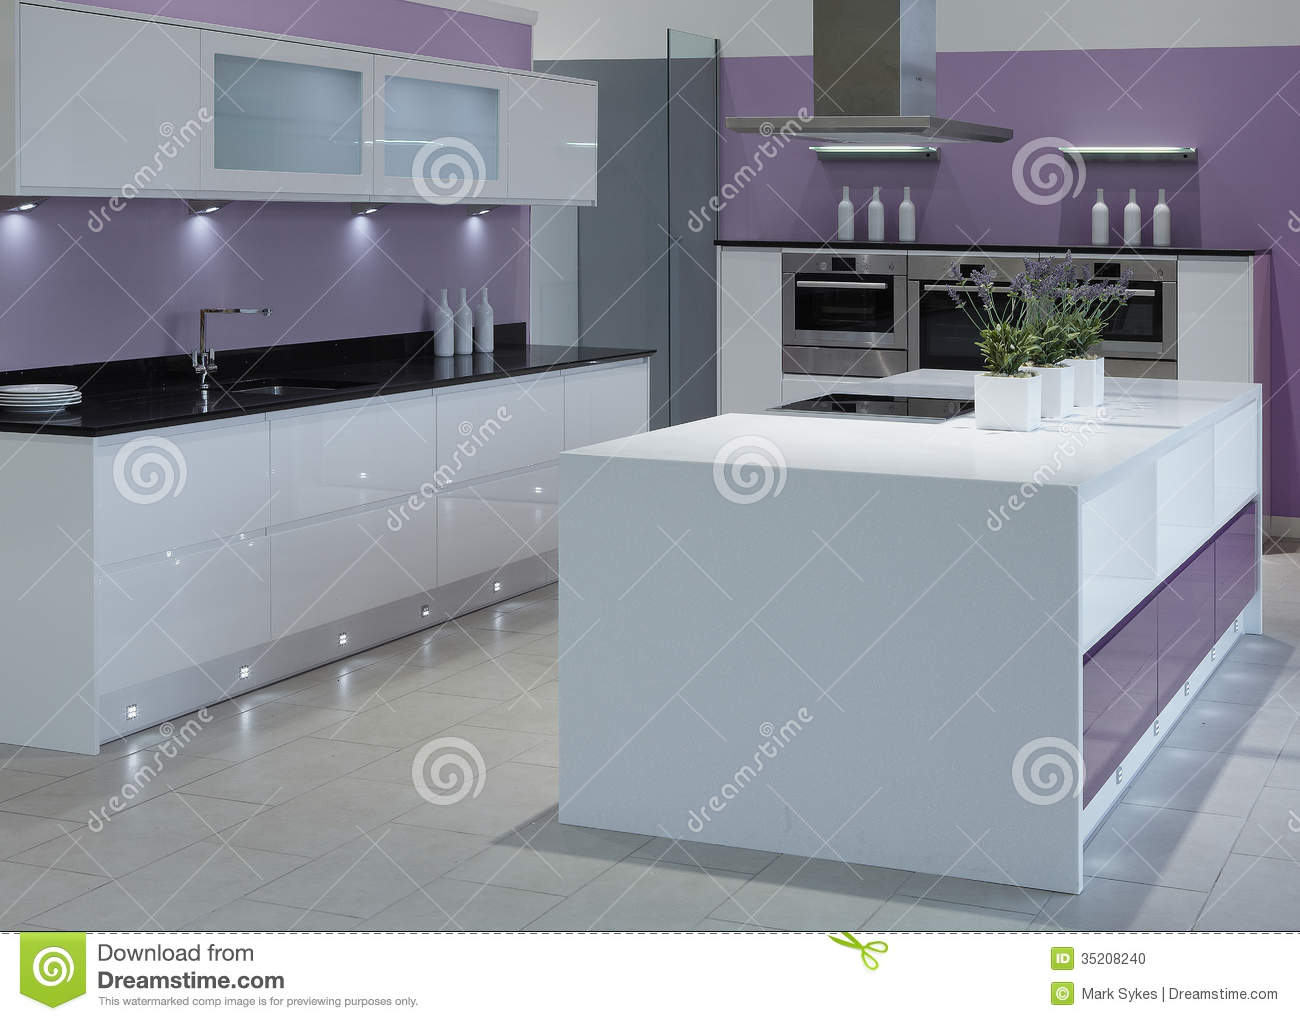 Modern High End Luxury Kitchen Stock Photo - Image of aspirational ...